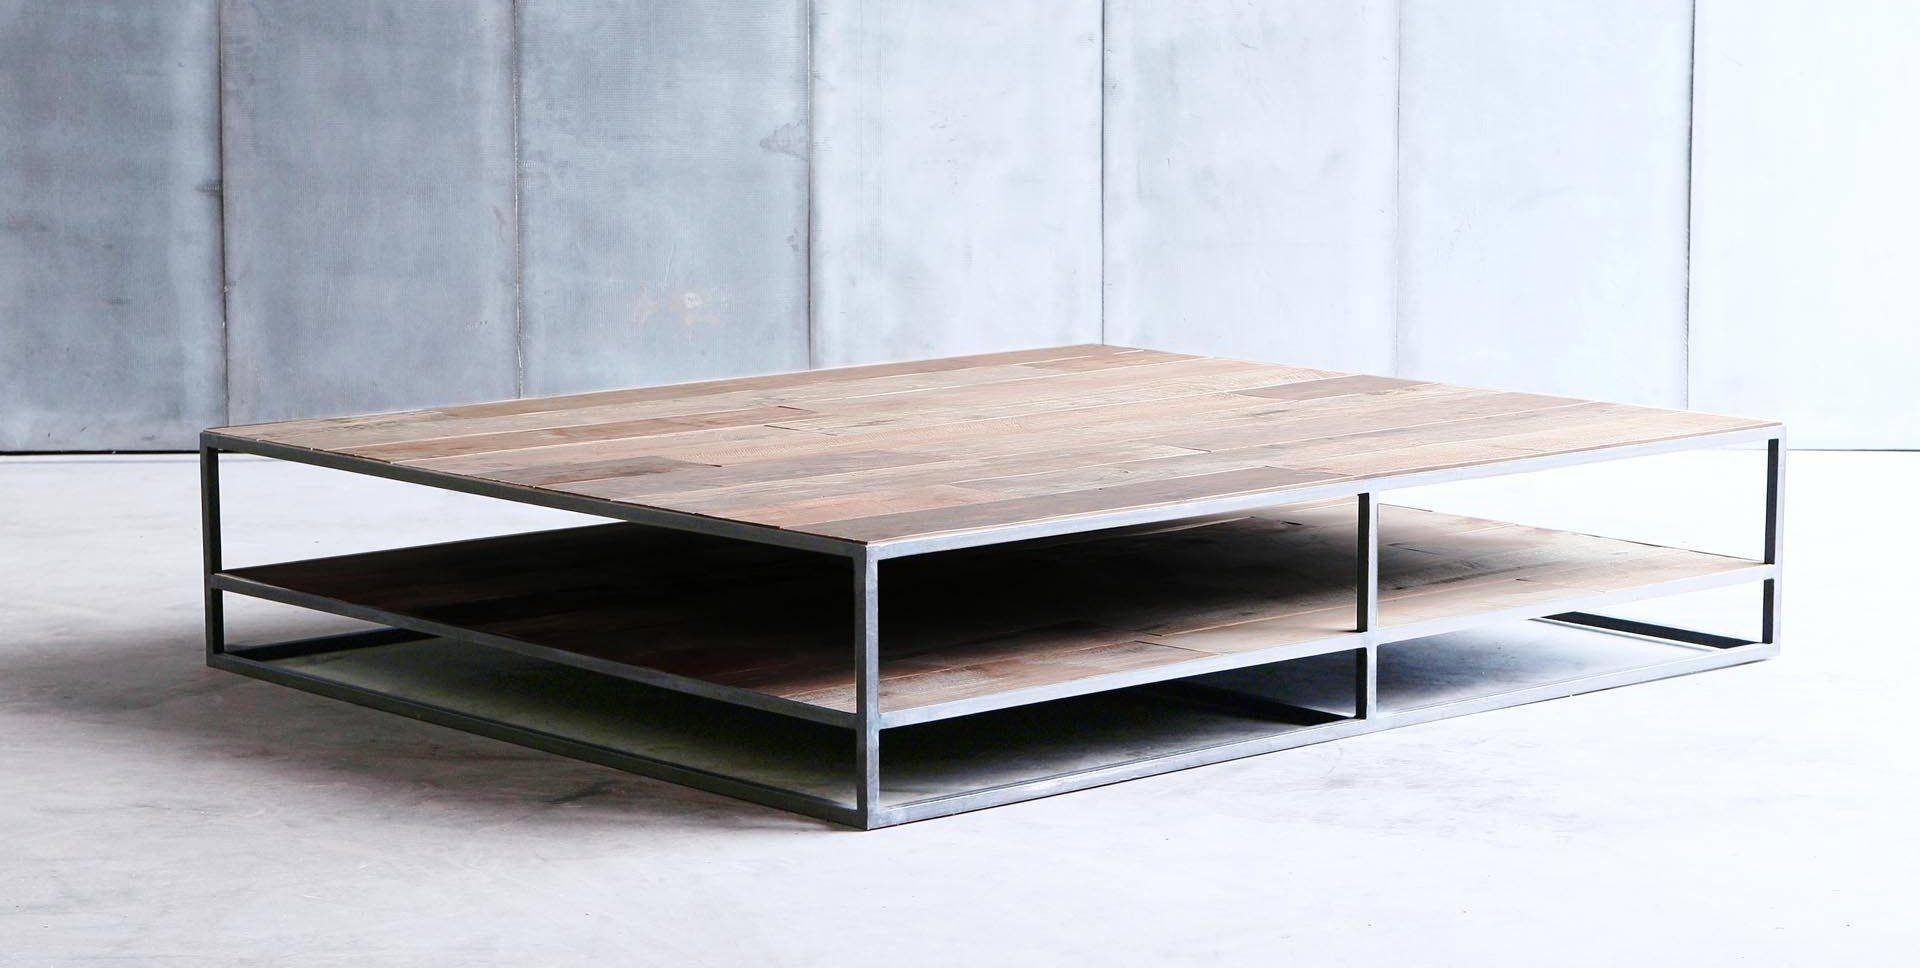 Industrial Style Coffee Table / Wooden / Metal / Square regarding Coffee Table Industrial Style (Image 26 of 30)